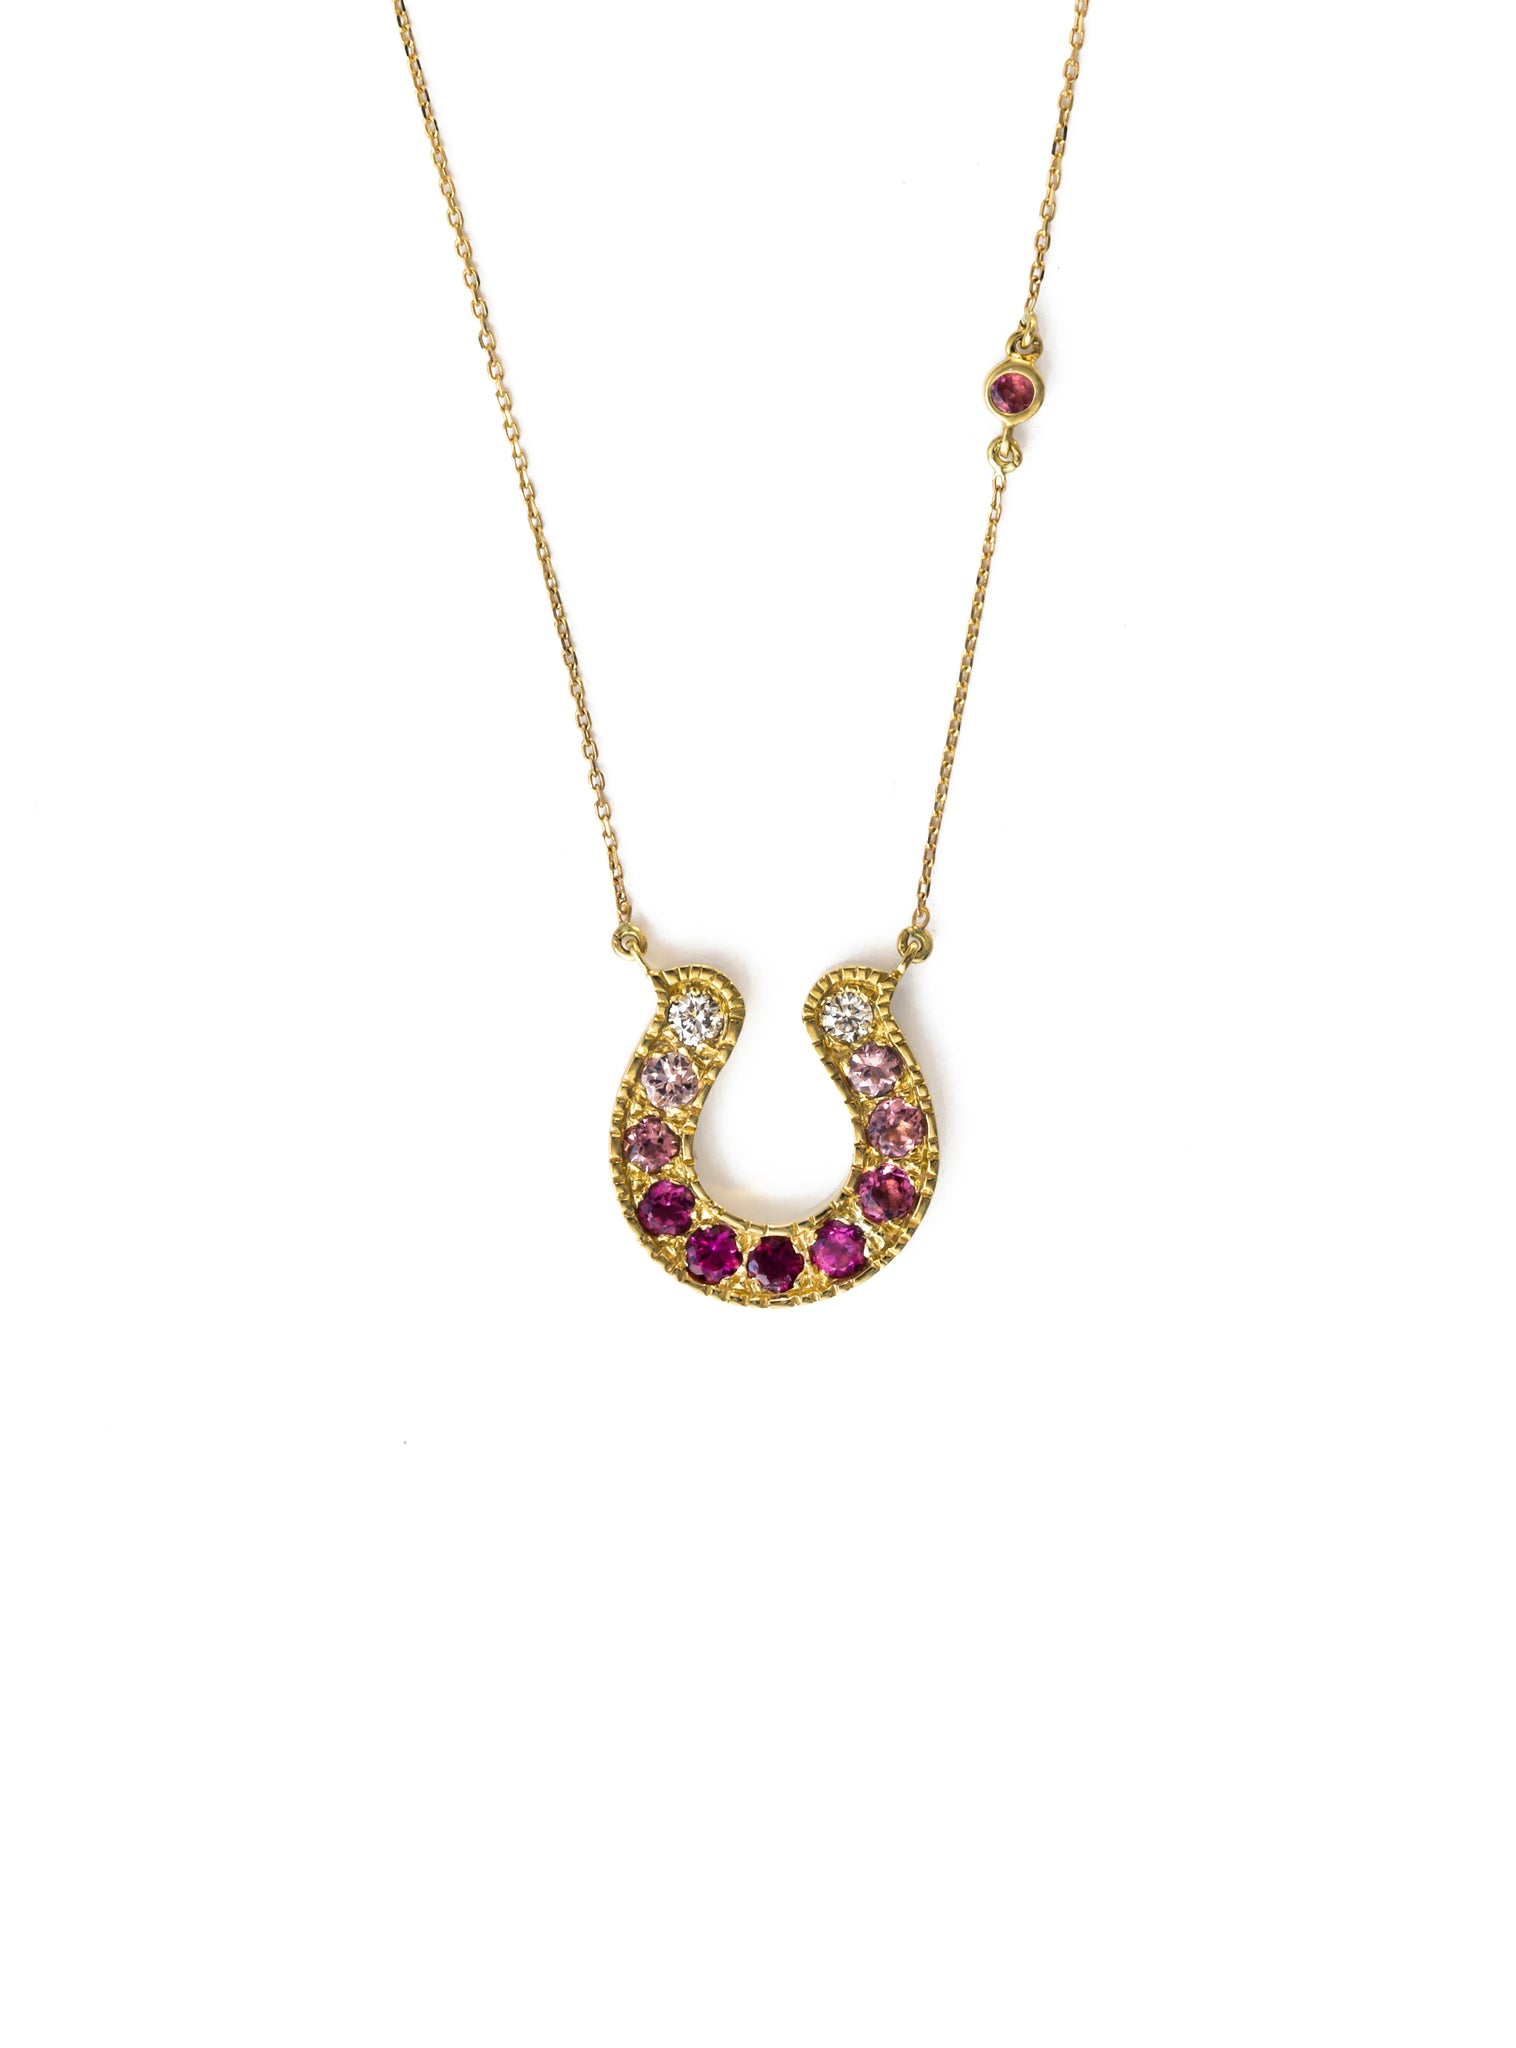 Horseshoe Necklace with Pink Tourmaline and Diamond Ombre